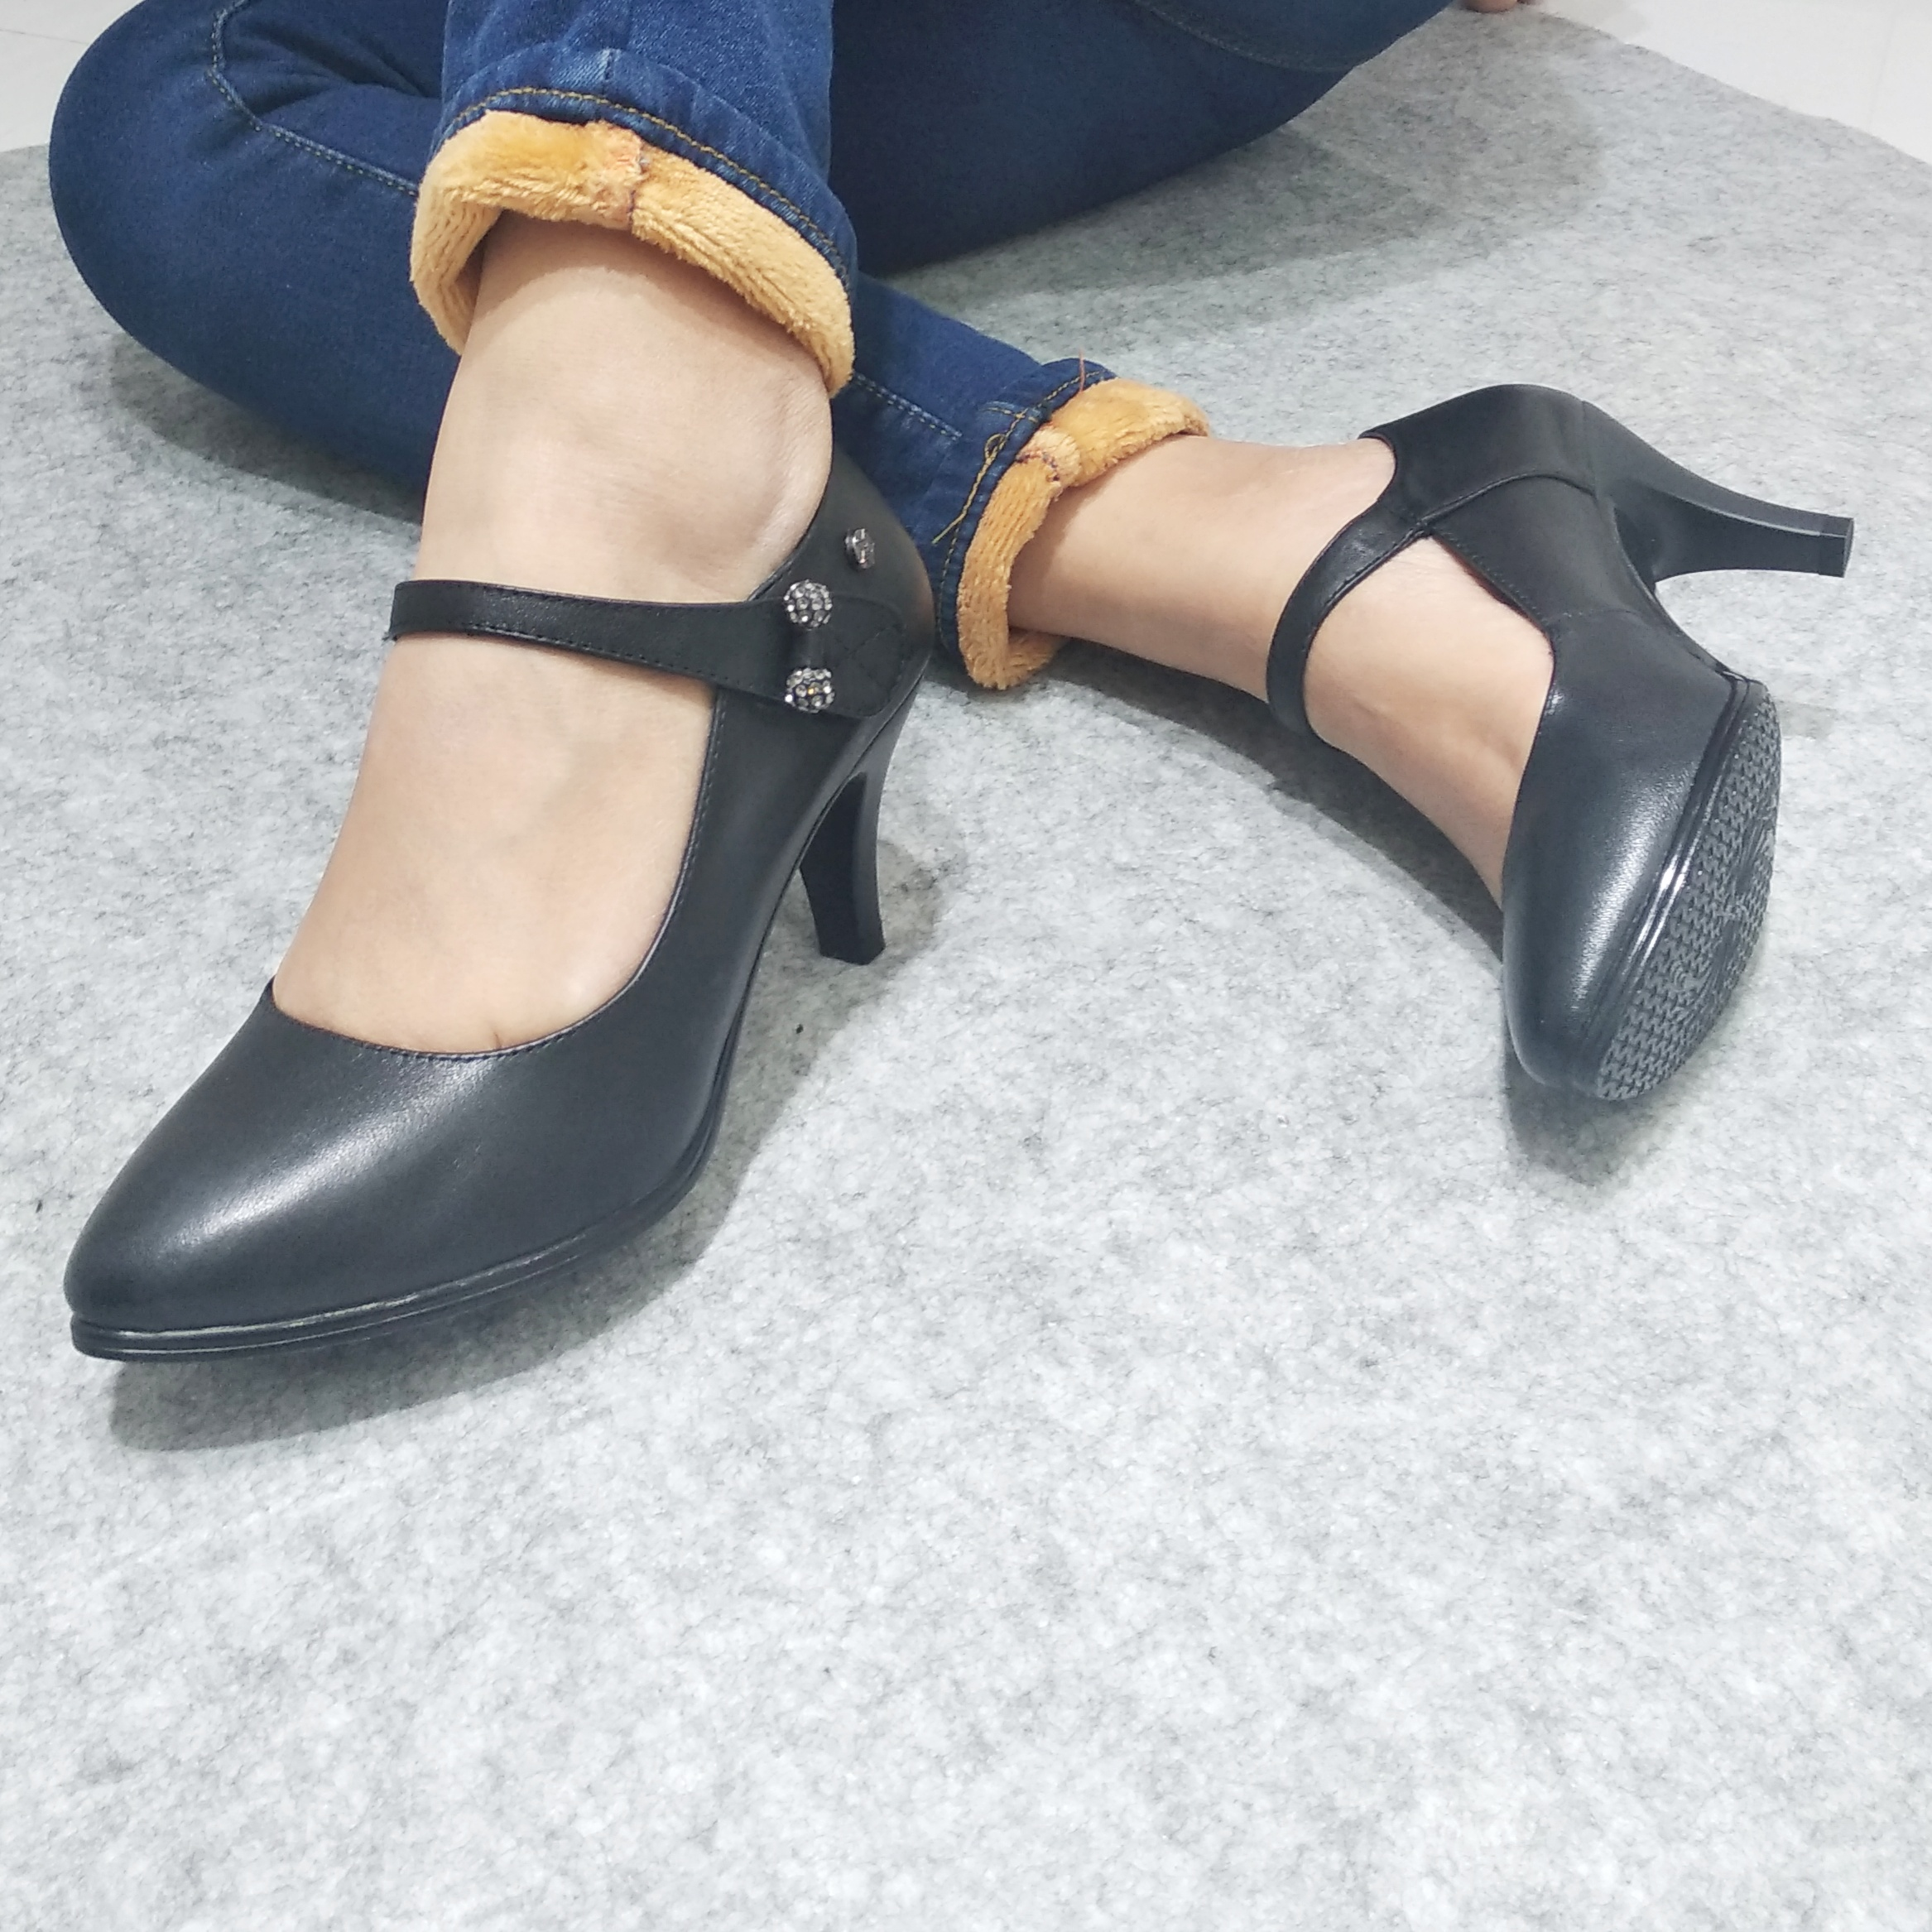 No return and exchange special price, one-piece cowhide heel 2020, buckle ankle strap, womens ladybugs, high-heeled work order shoes, beauty